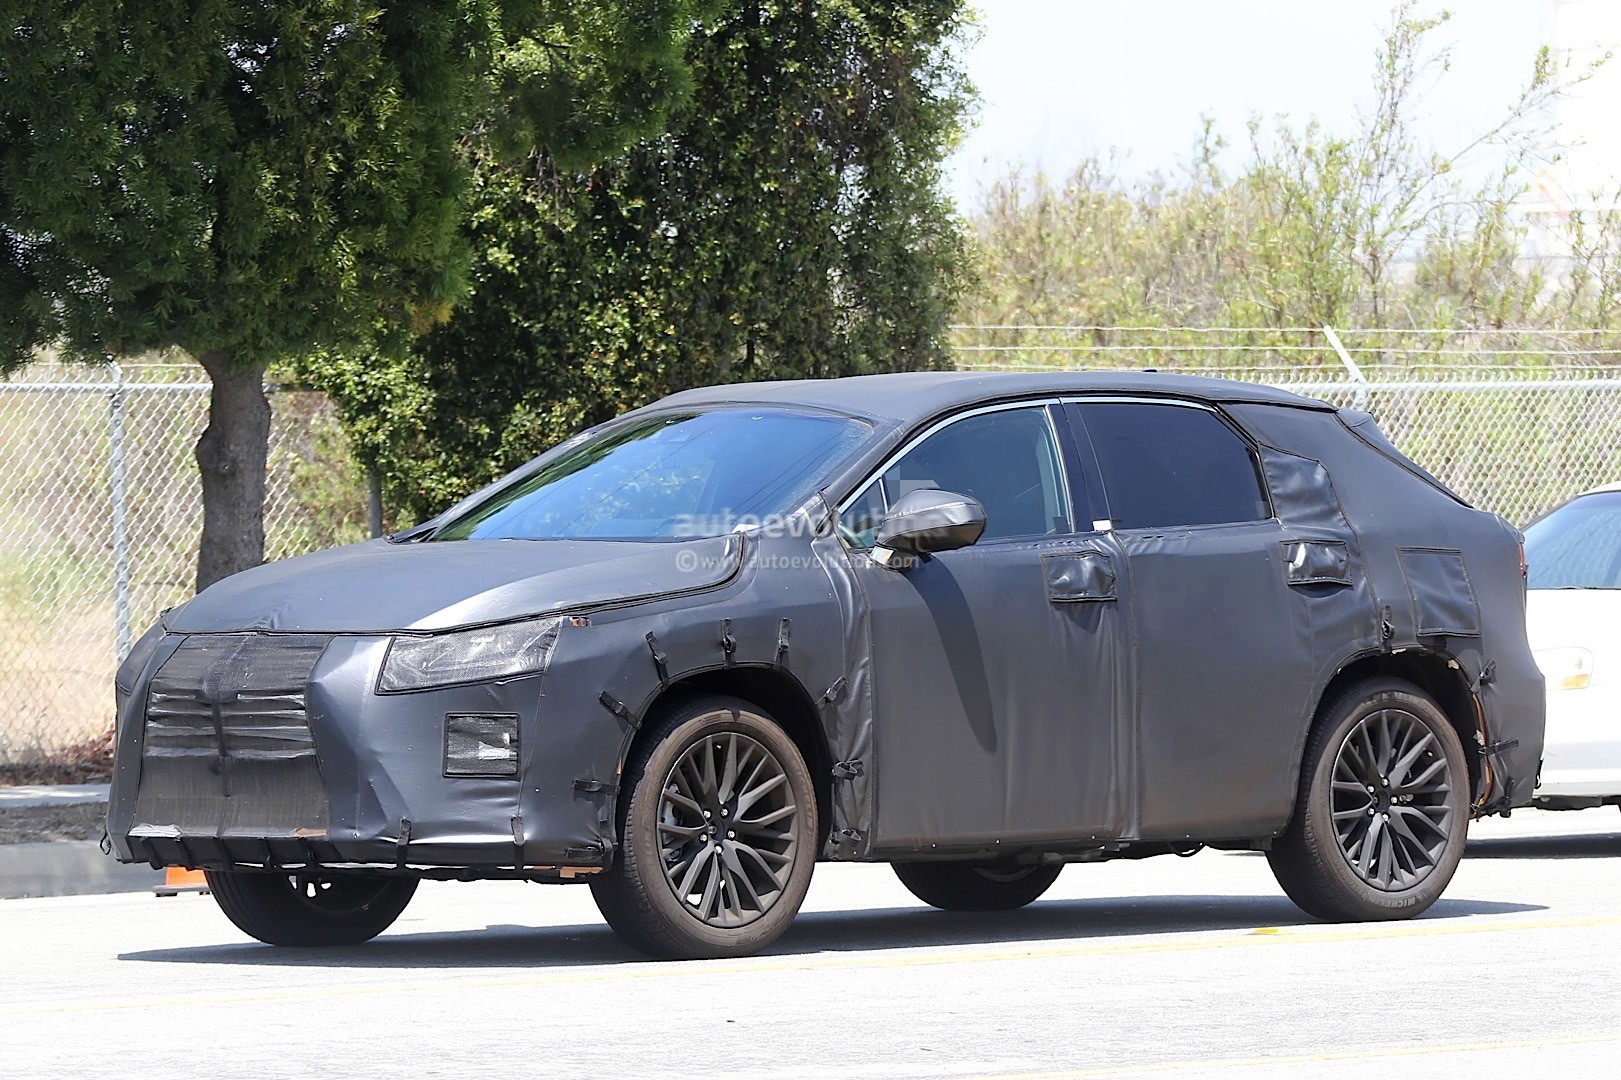 Lexus 7 Seater Suv >> Seven-Seat RX Confirmed: 2018 Lexus RXL Coming To 2017 L.A. Auto Show - autoevolution